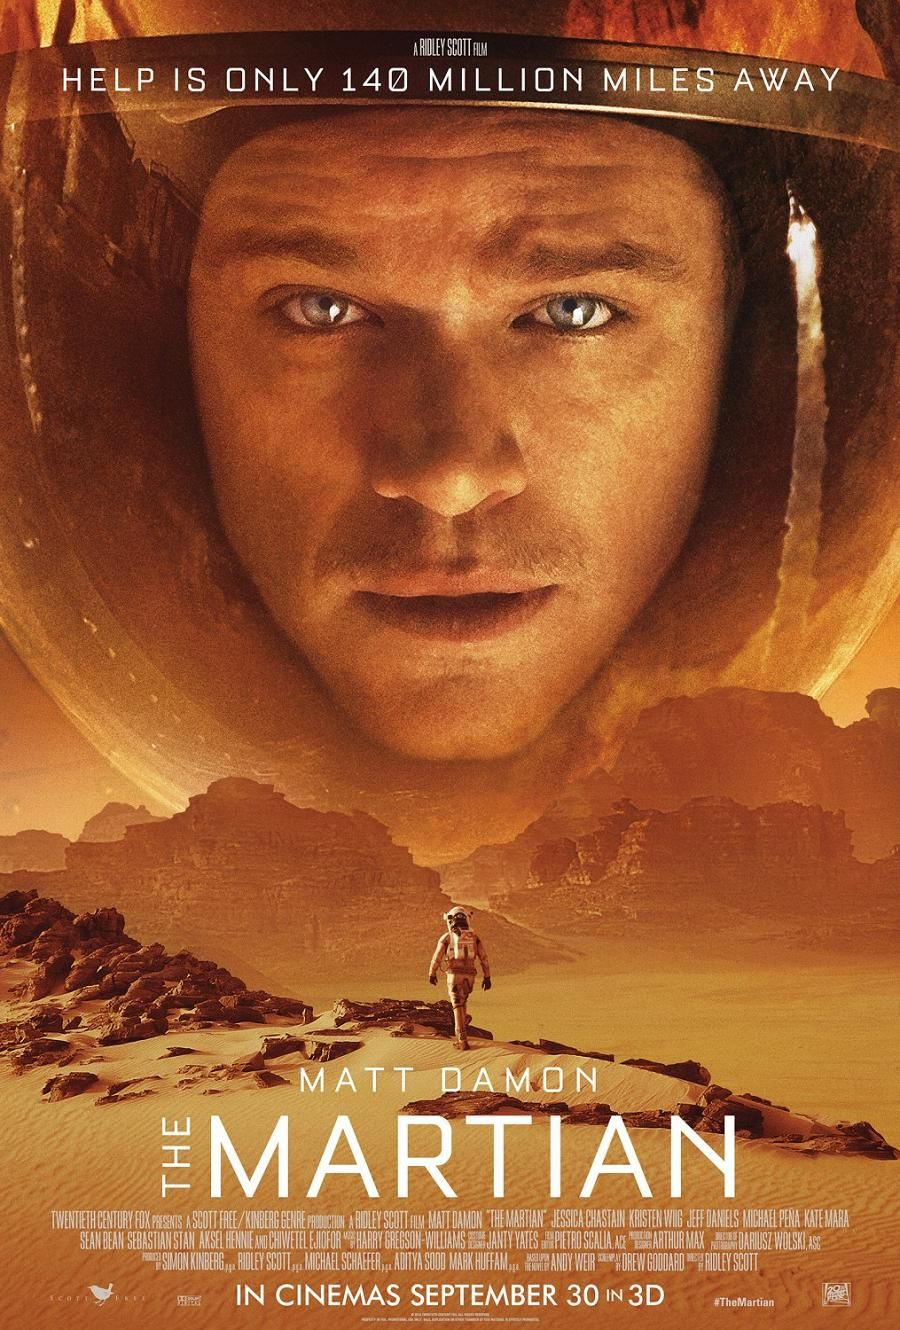 The Martian Poster Space Movies The Martian Film Movie Posters